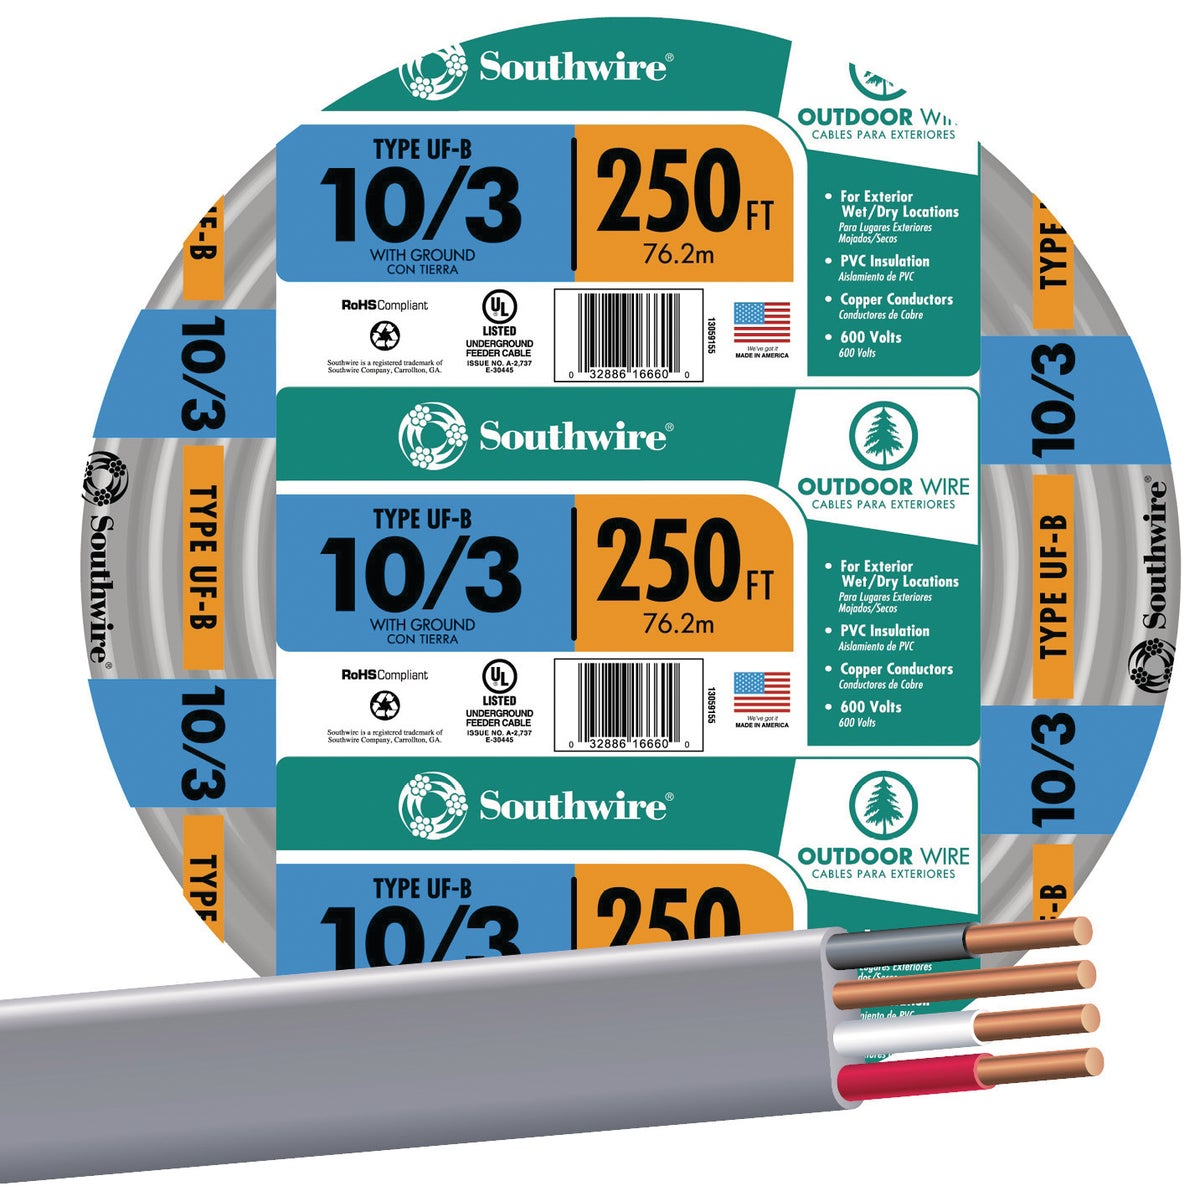 250' 10-3 UFW/G WIRE - 13059155 by Southwire Company